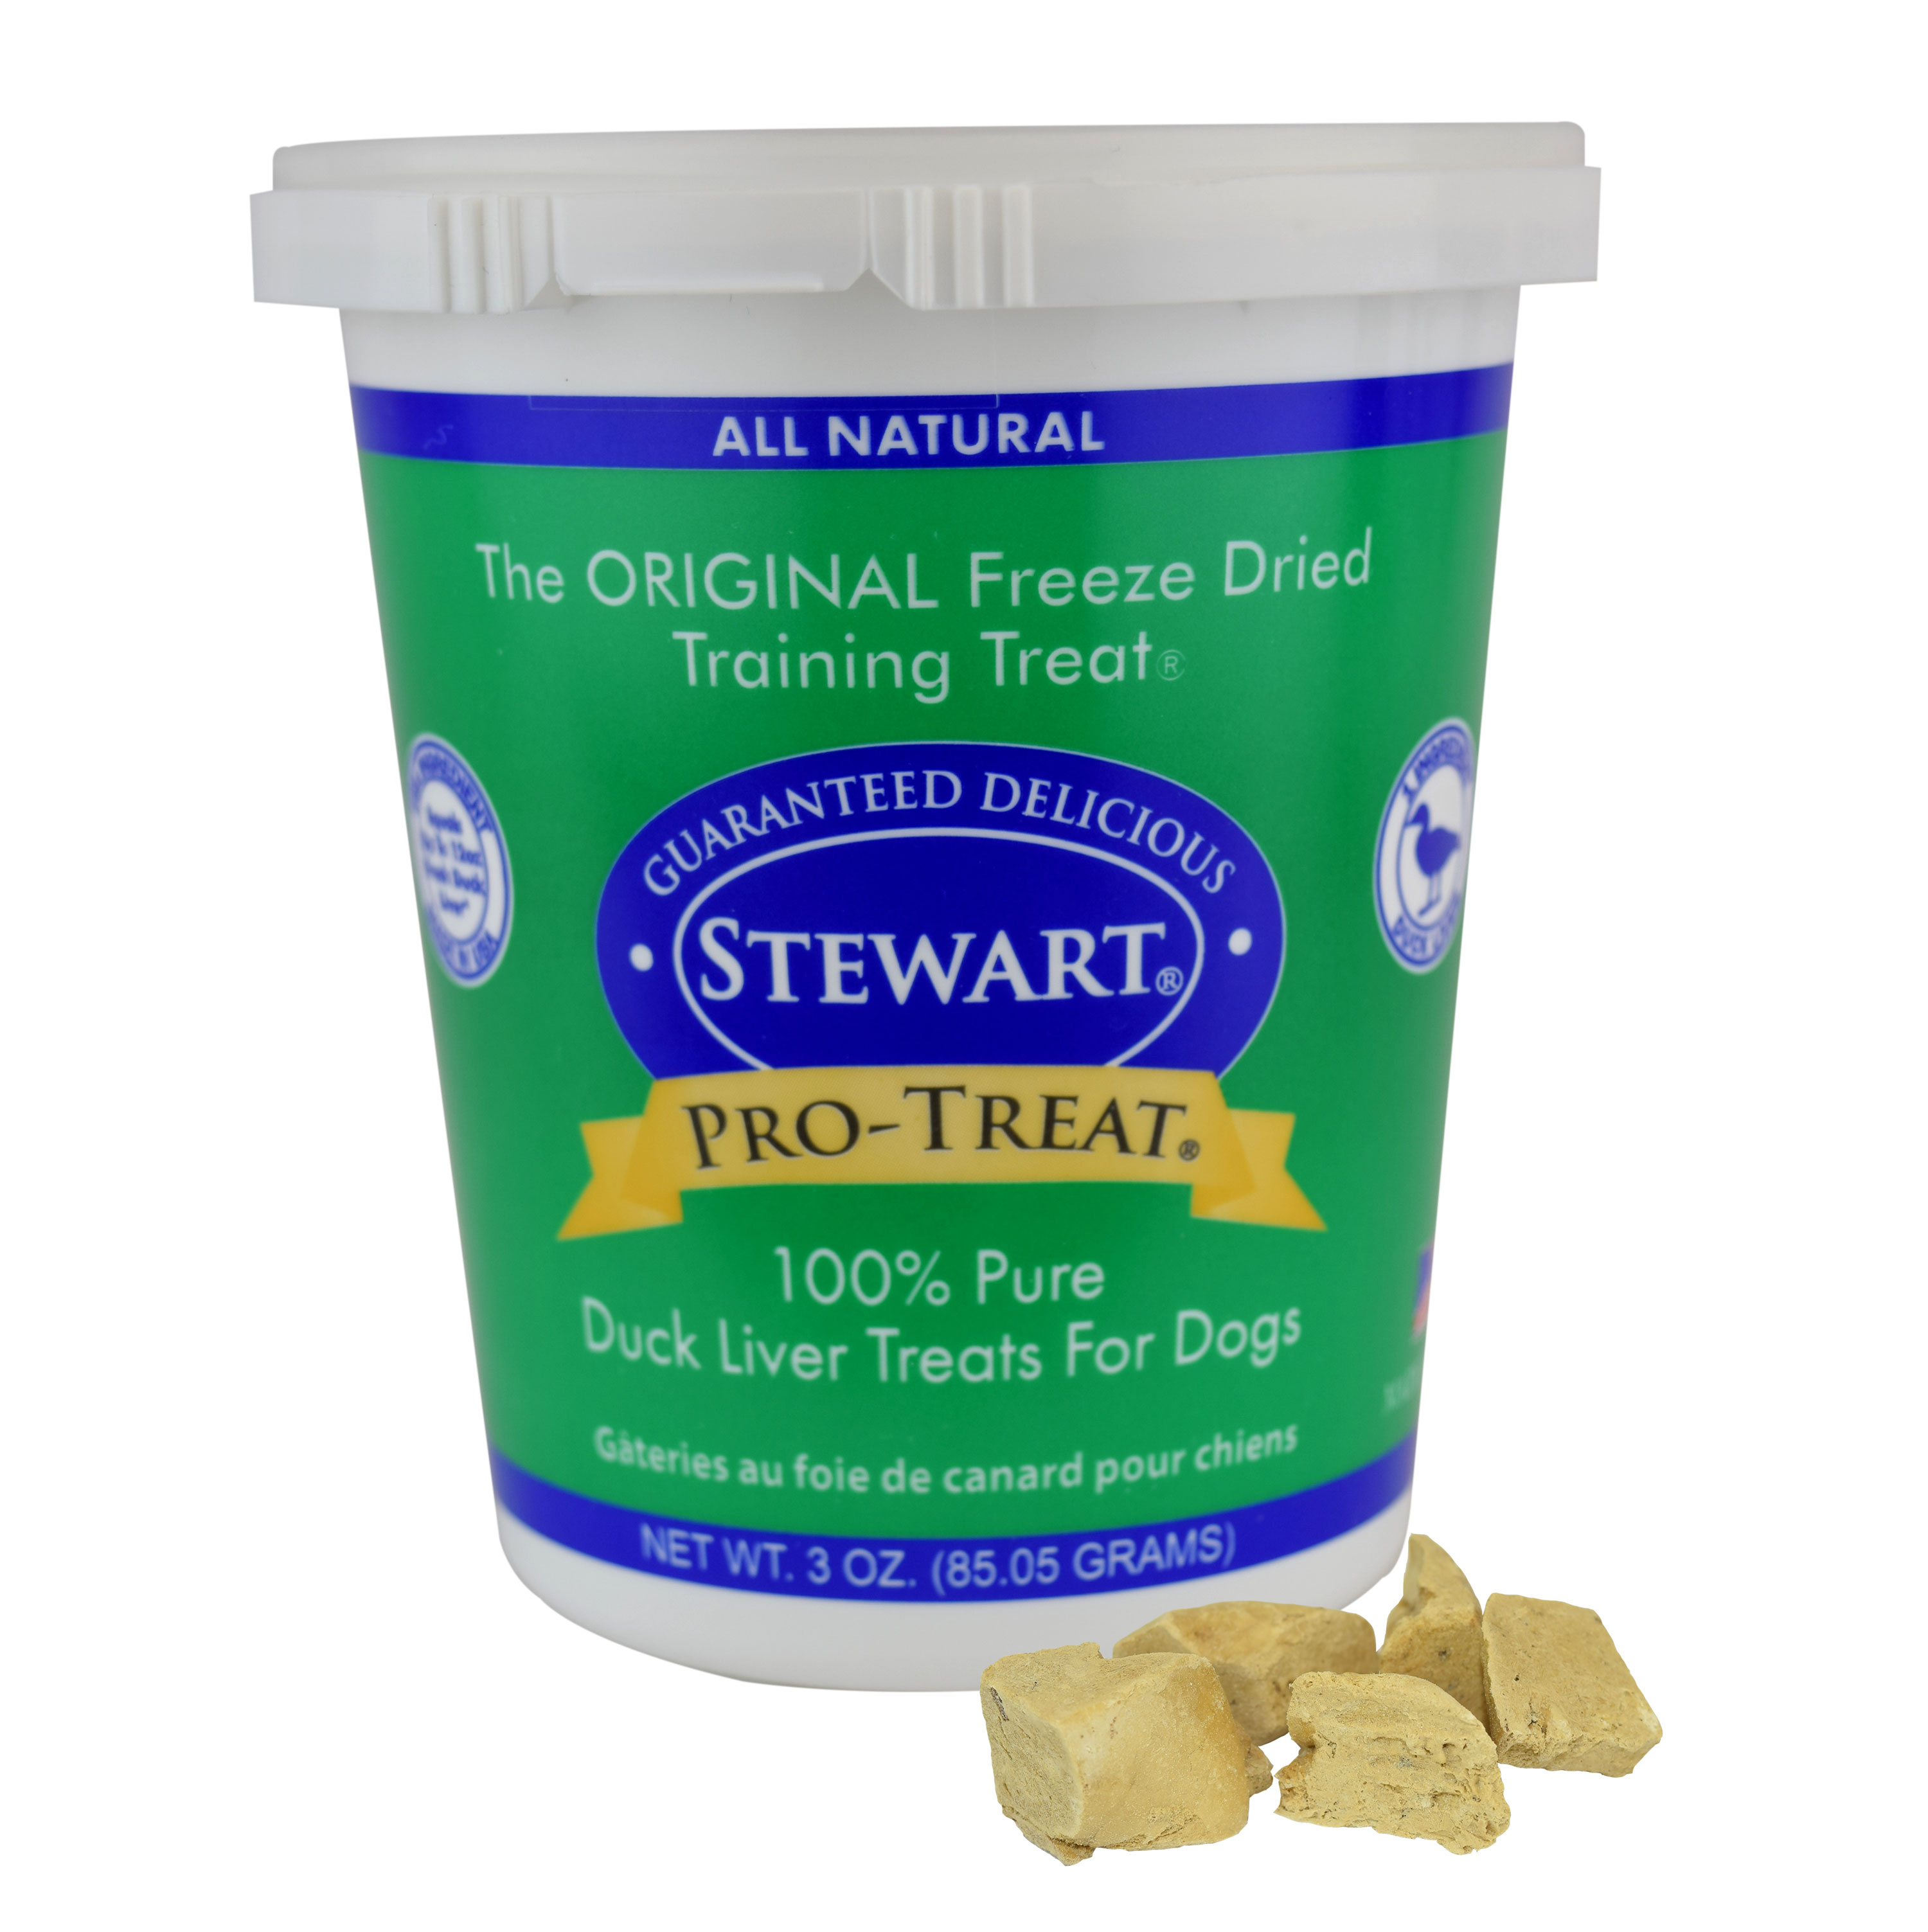 Stewart Freeze Dried Duck Liver Dog Treats by Pro-Treat, 3 oz. Tub